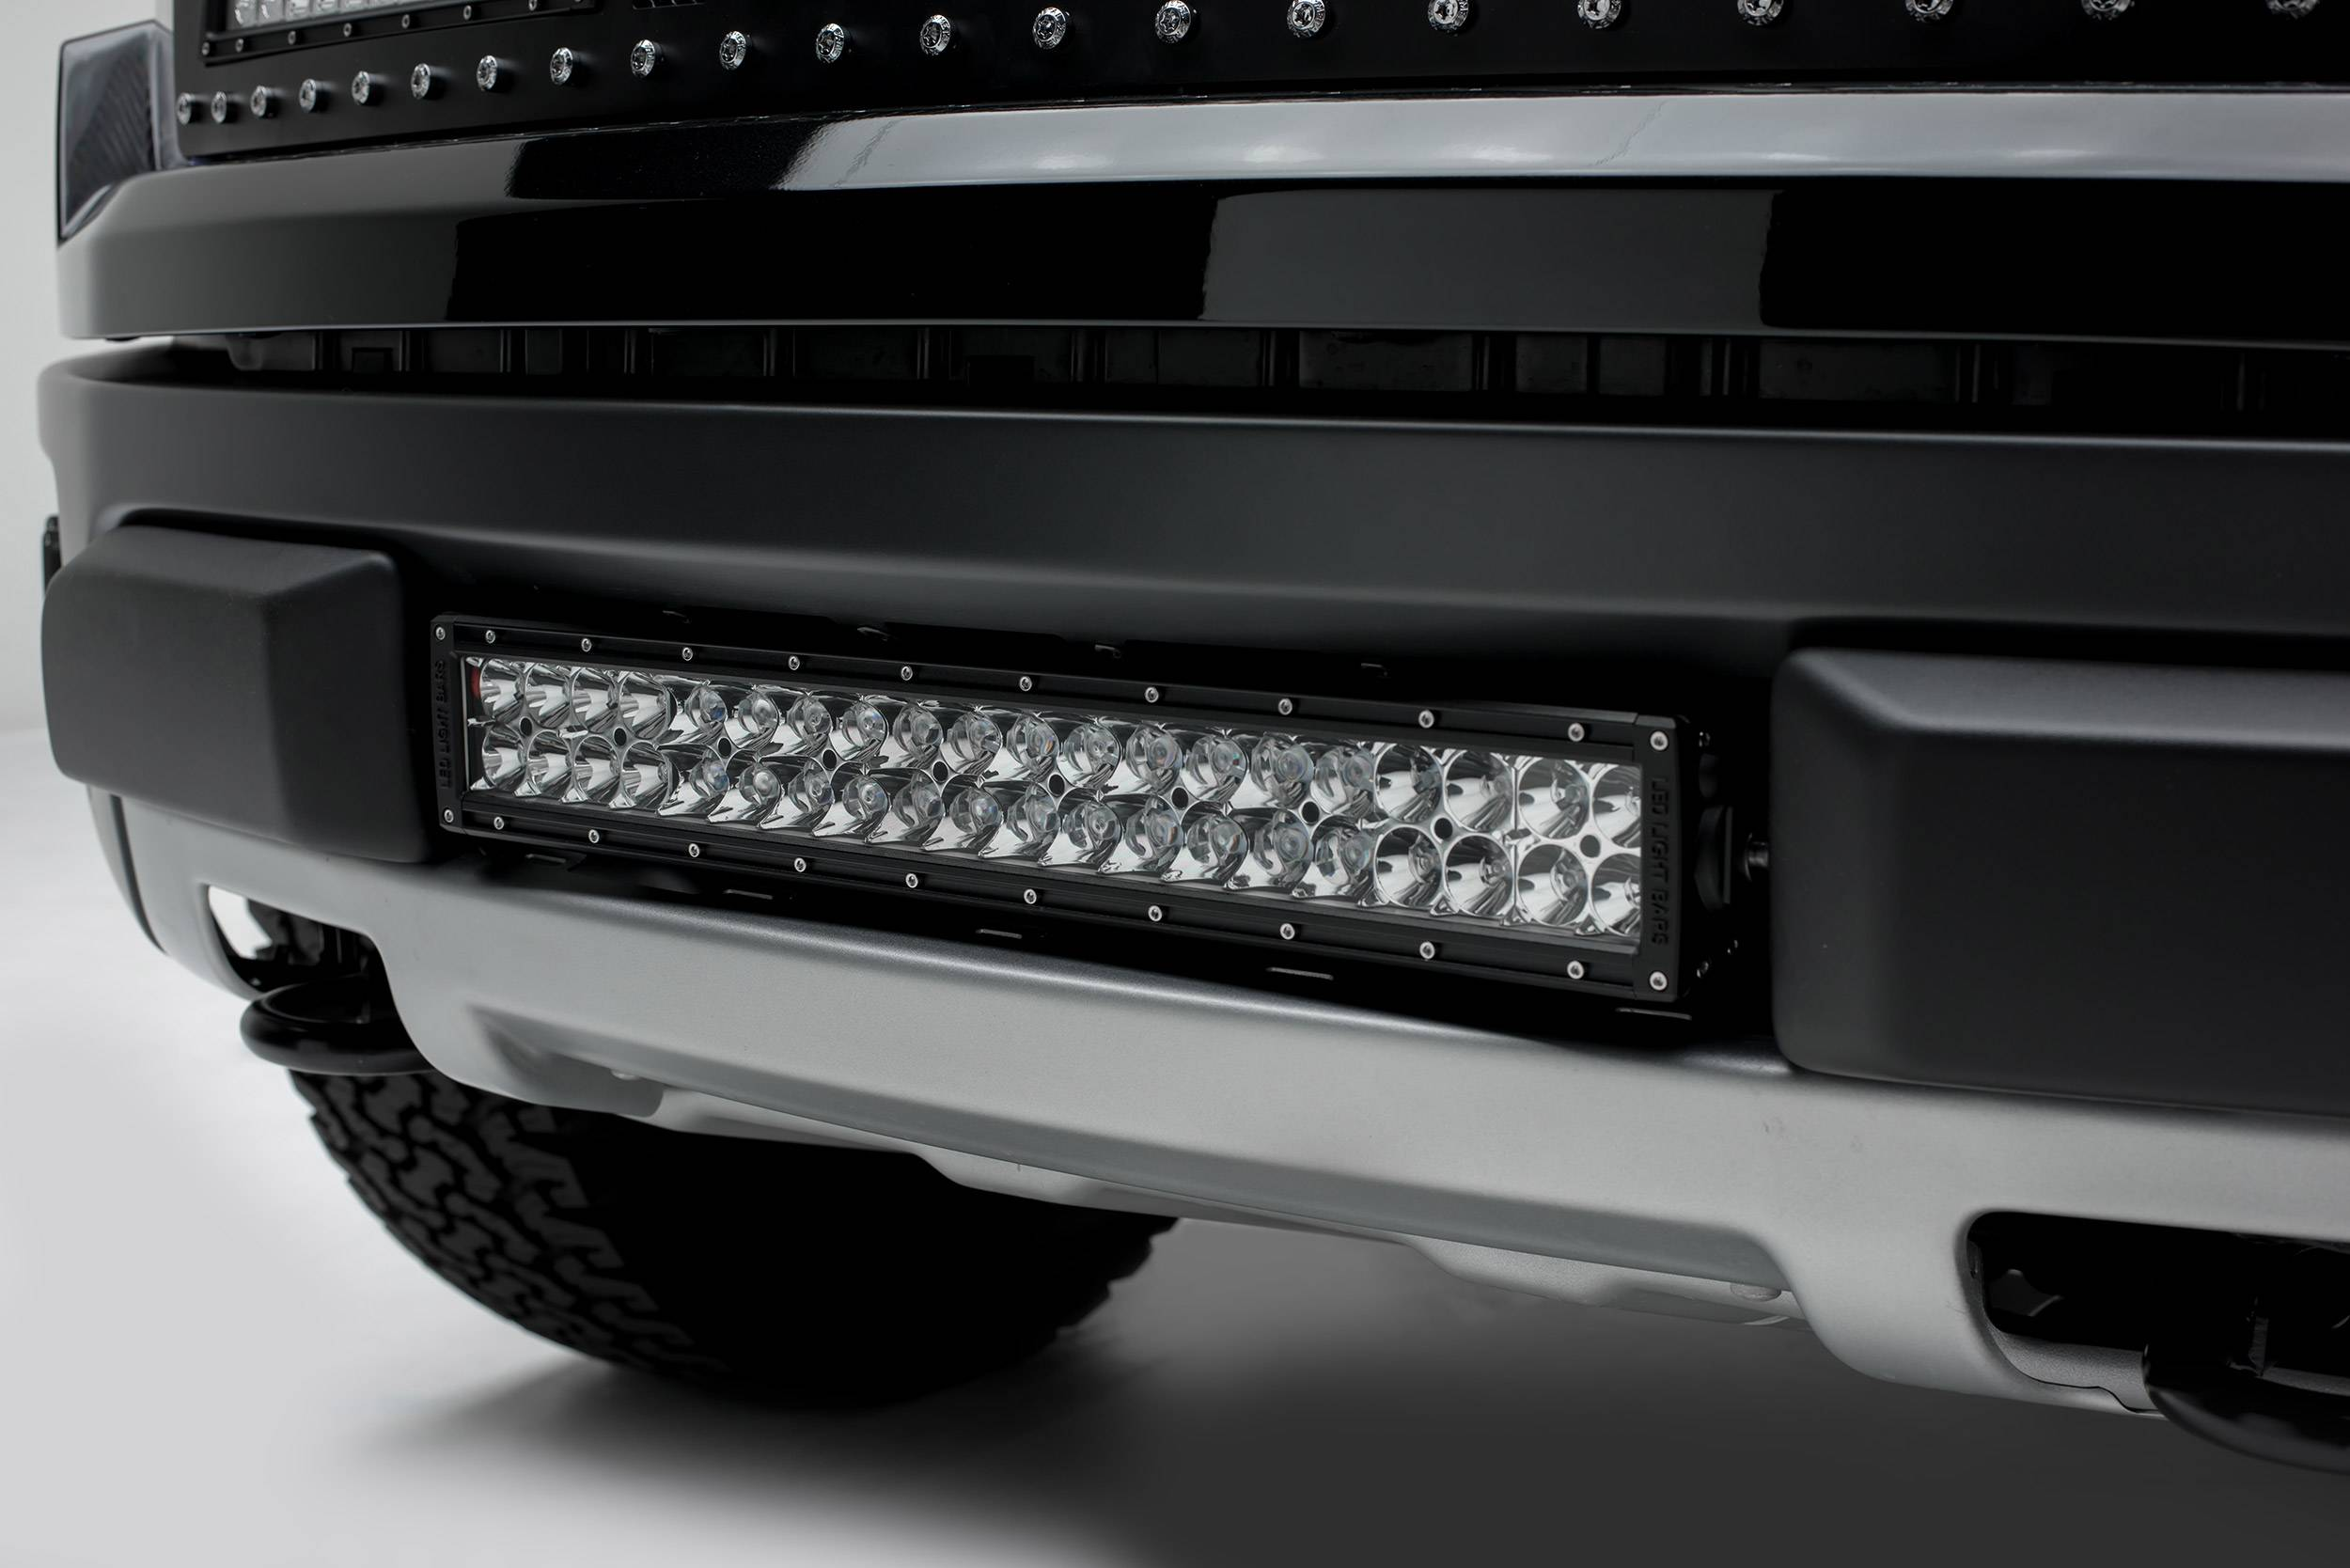 2010-2014 Ford F-150 Raptor Front Bumper Center LED Kit, Incl. (1) 20 Inch LED Straight Double Row L